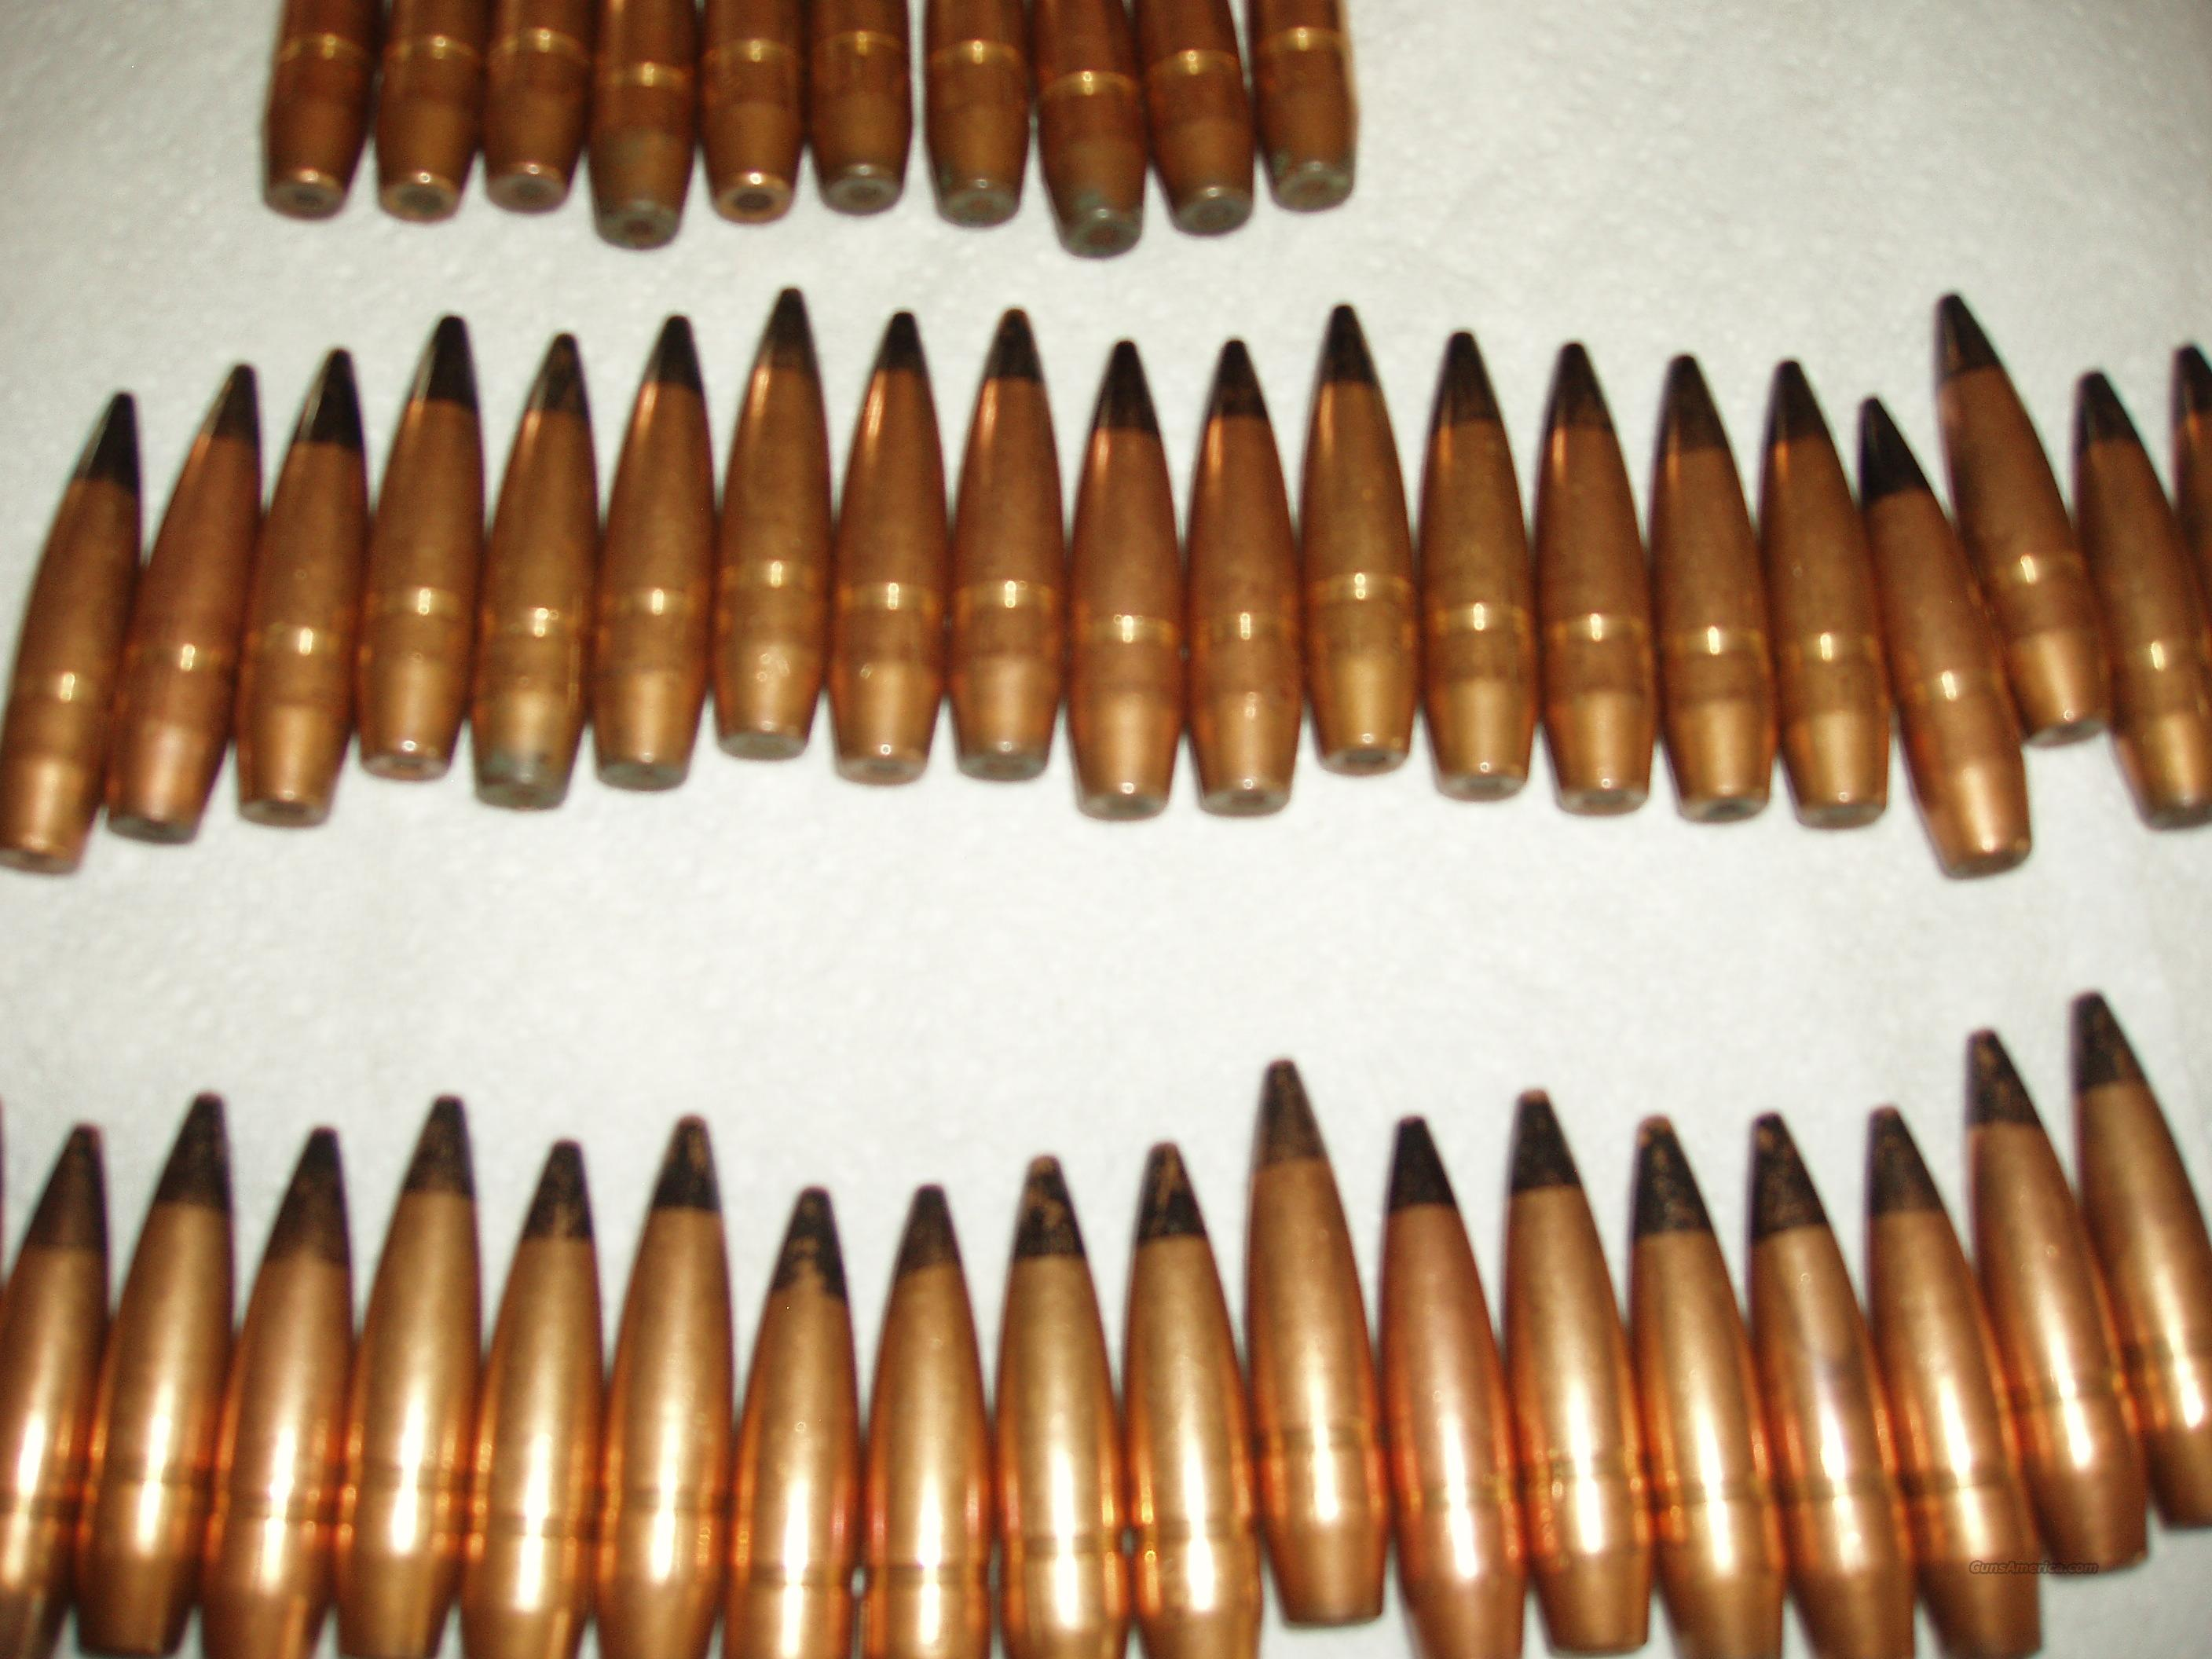 AP 50BMG BULLETS  Non-Guns > Ammunition